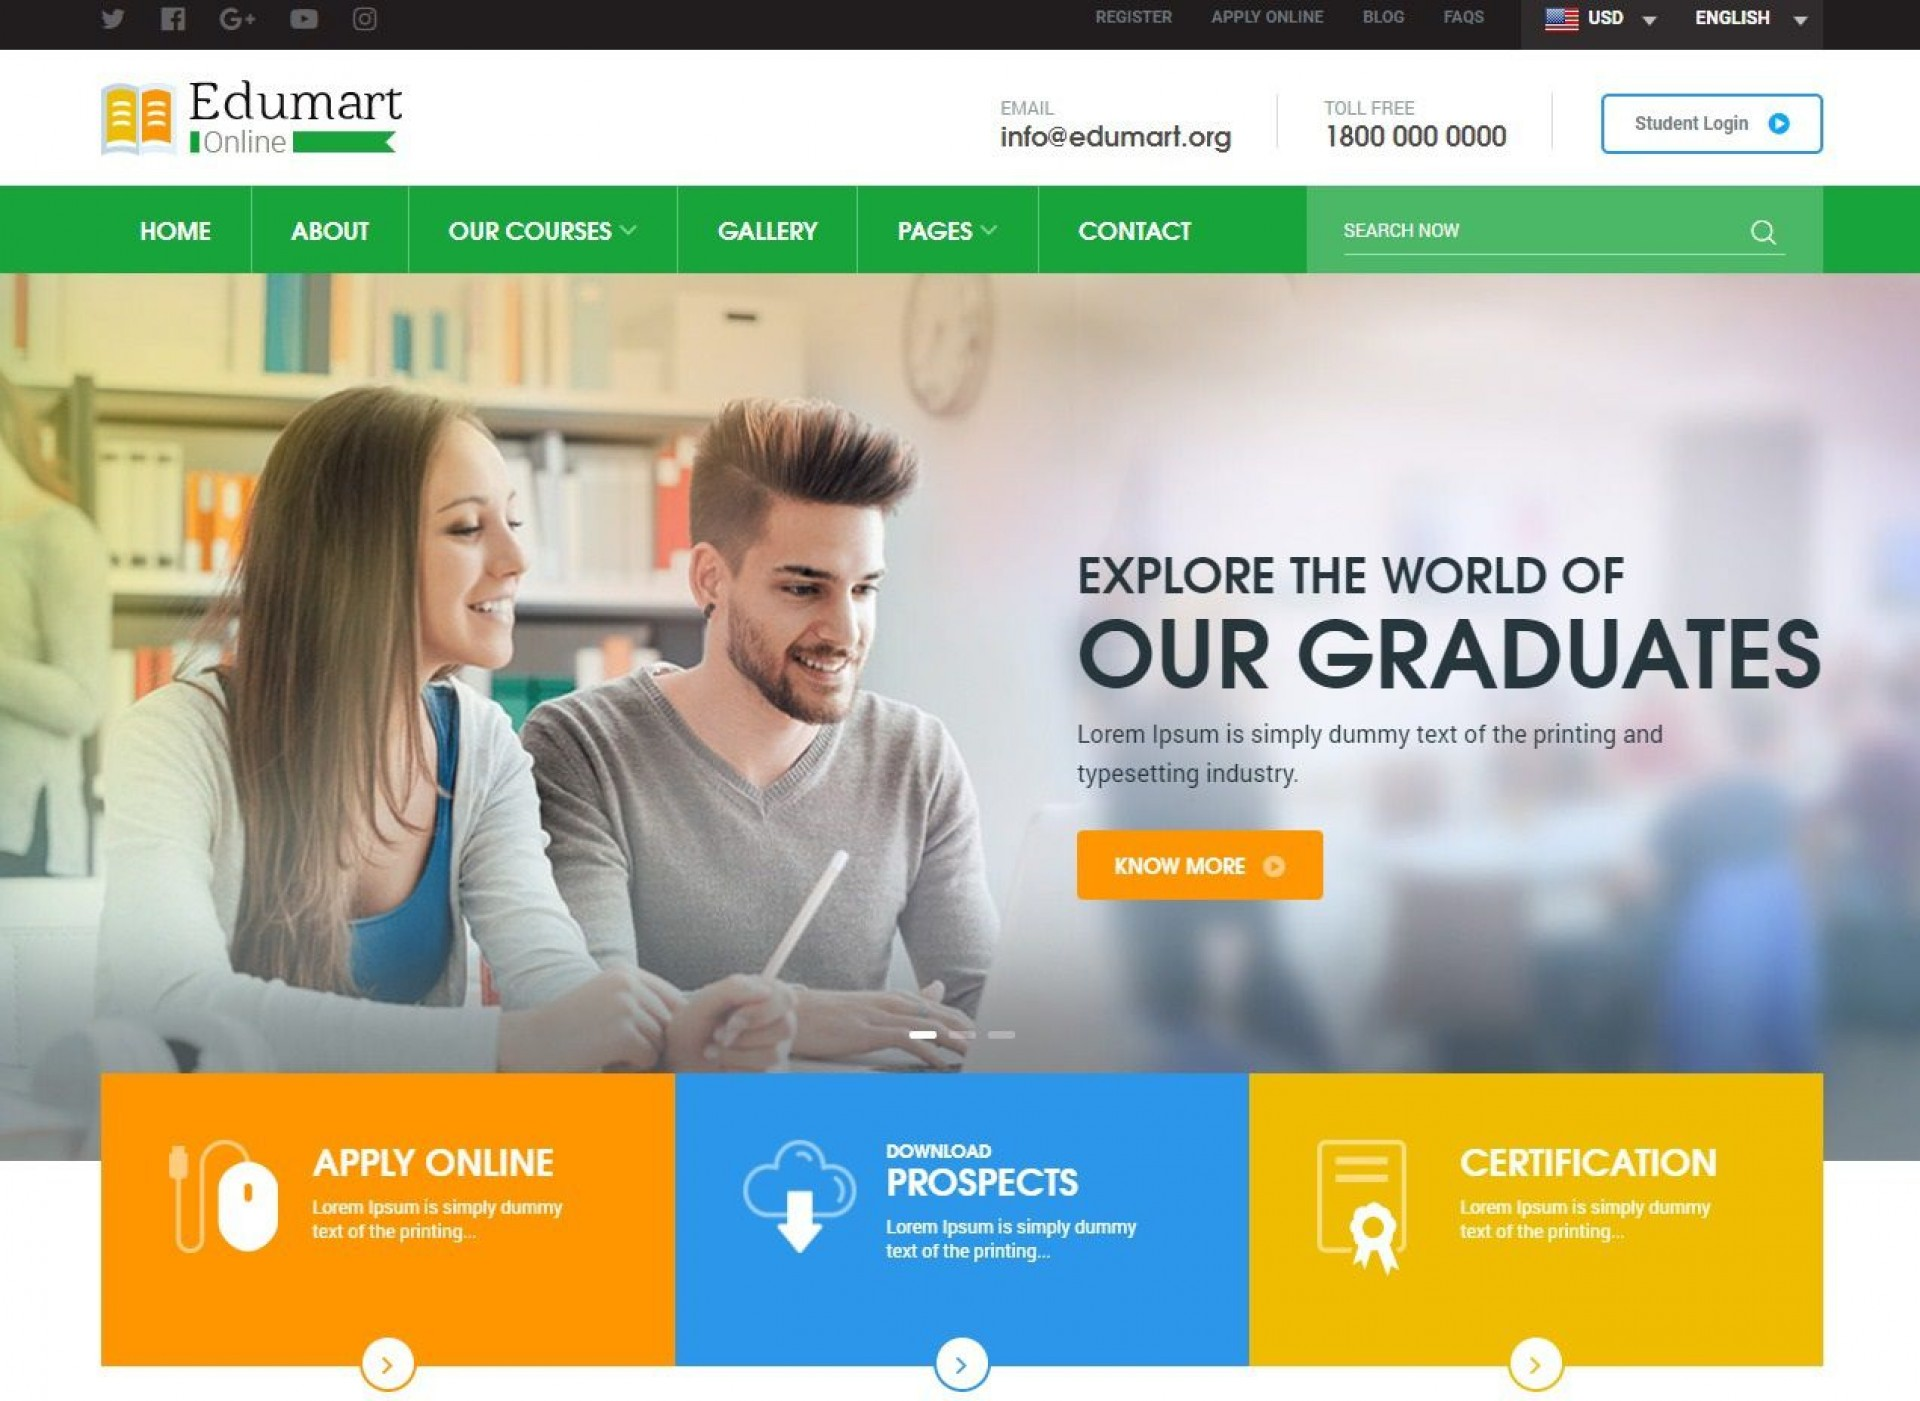 006 Exceptional Website Template Html Free Download Picture  Indian School Software Company Spice1920